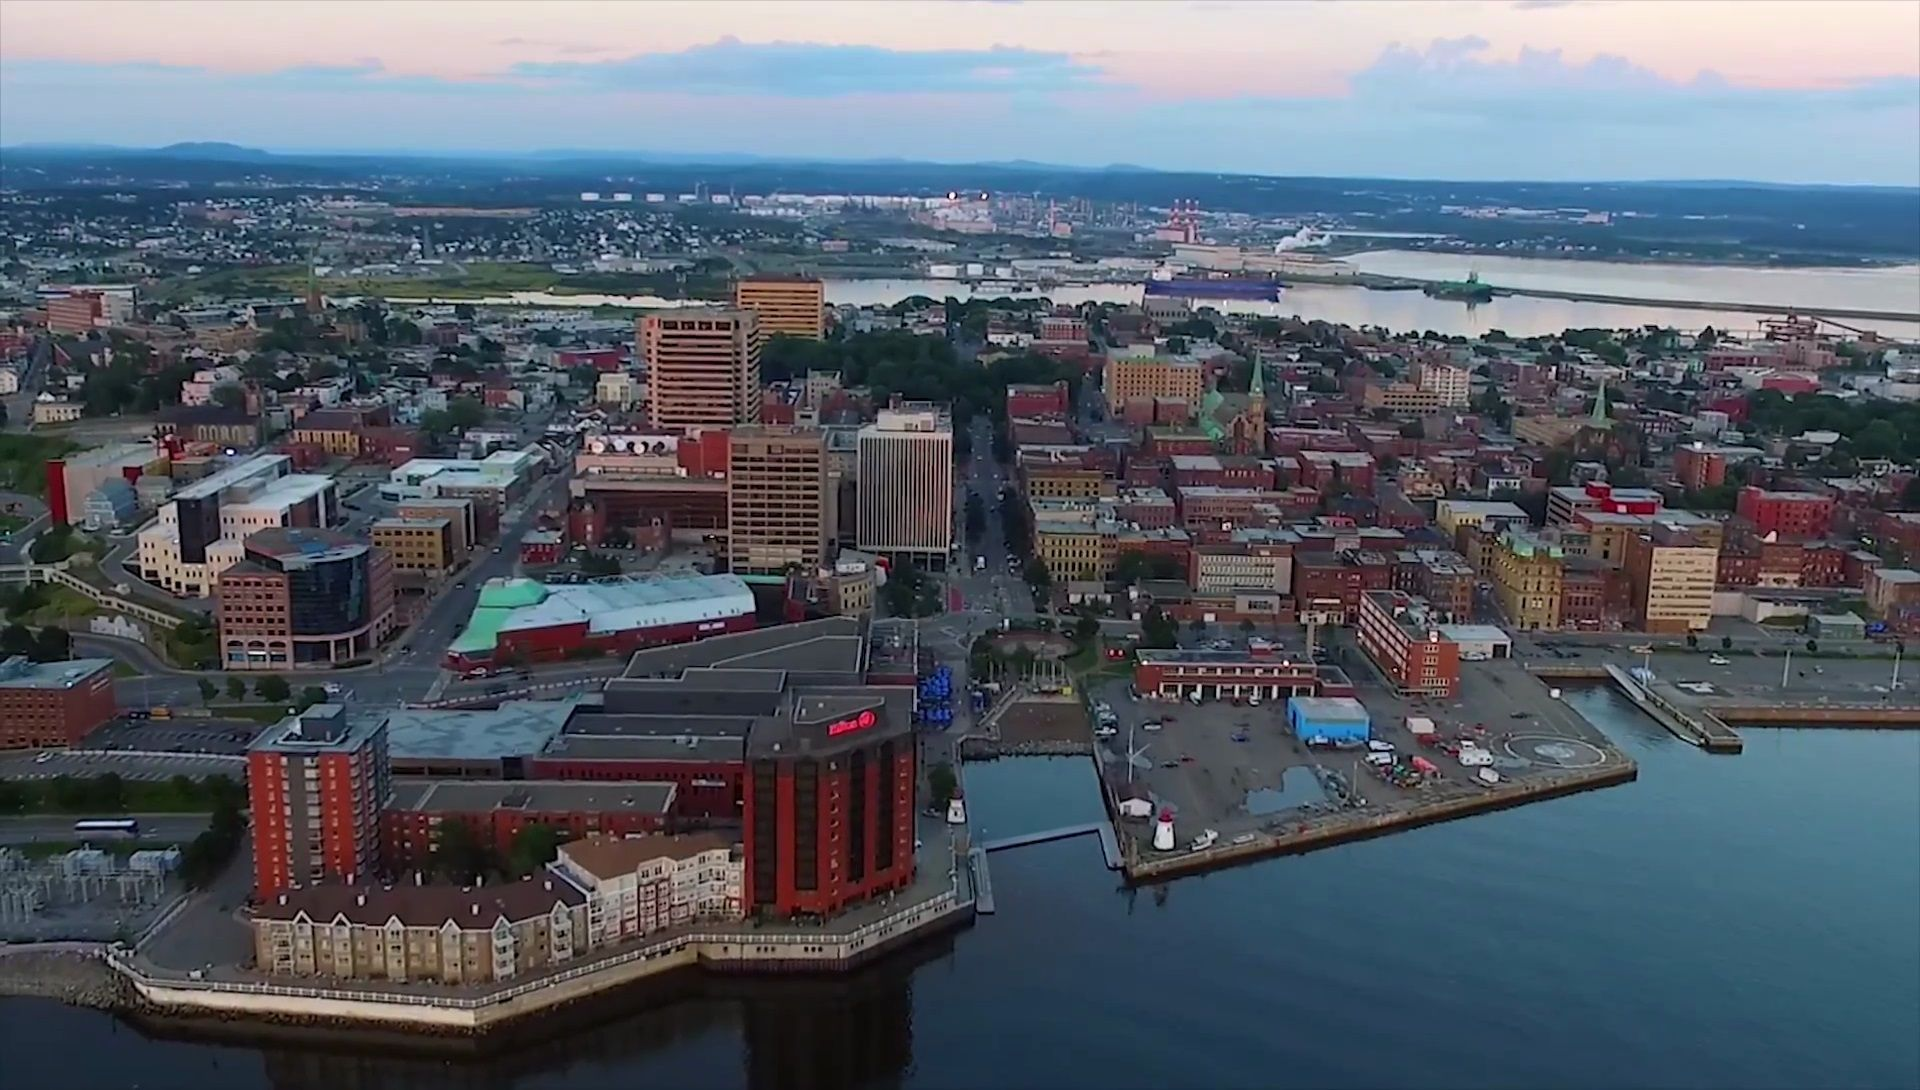 Pin by Jeff D on Back Home Drone photography, Aerial